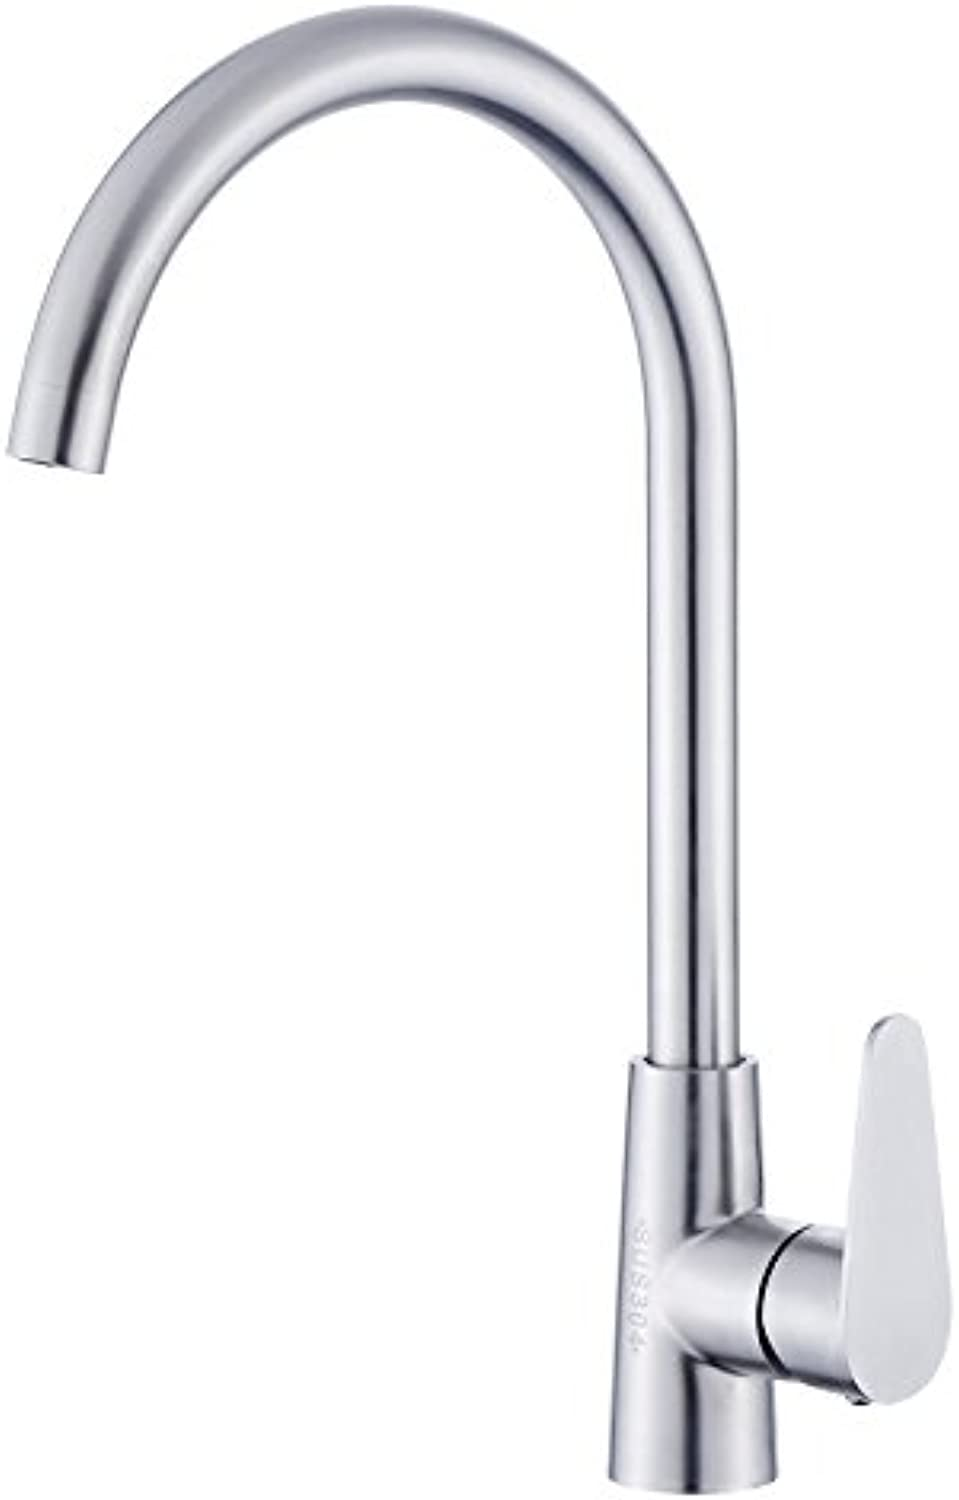 304 Stainless Steel Kitchen Sink, Wash Basin, Hot And Cold Kitchen Tap